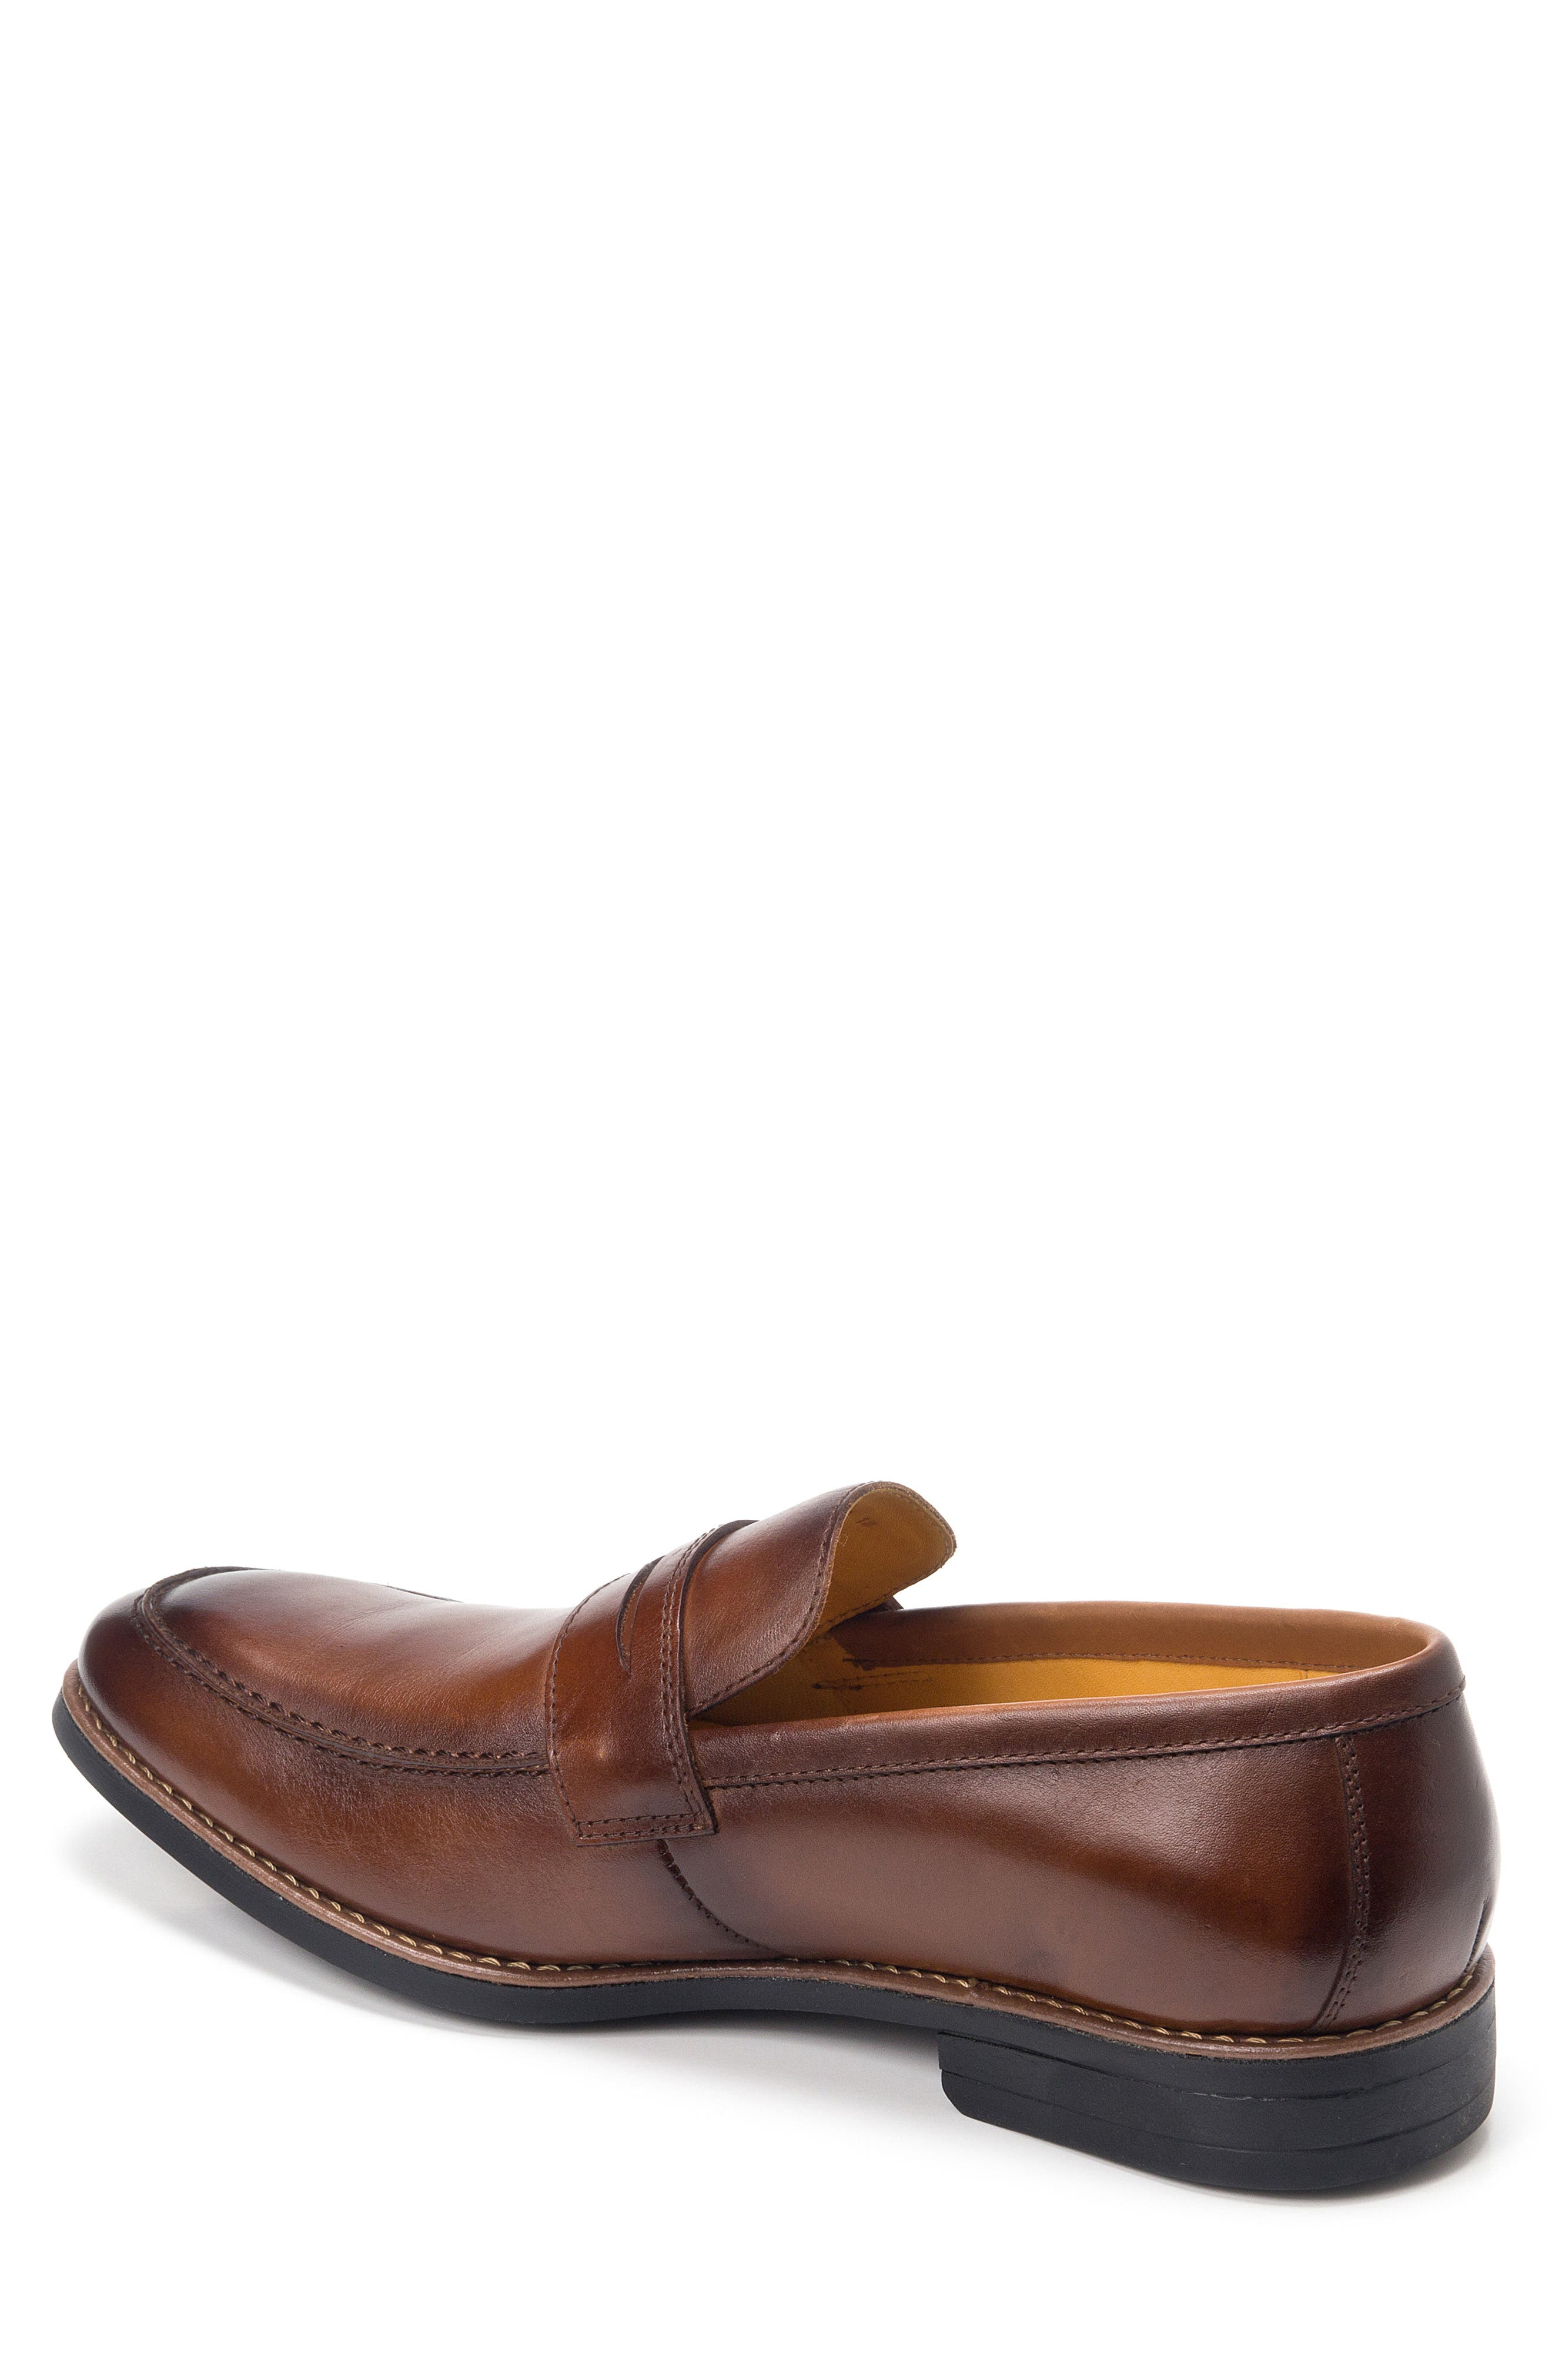 Mundo Penny Loafer,                             Alternate thumbnail 2, color,                             BROWN LEATHER